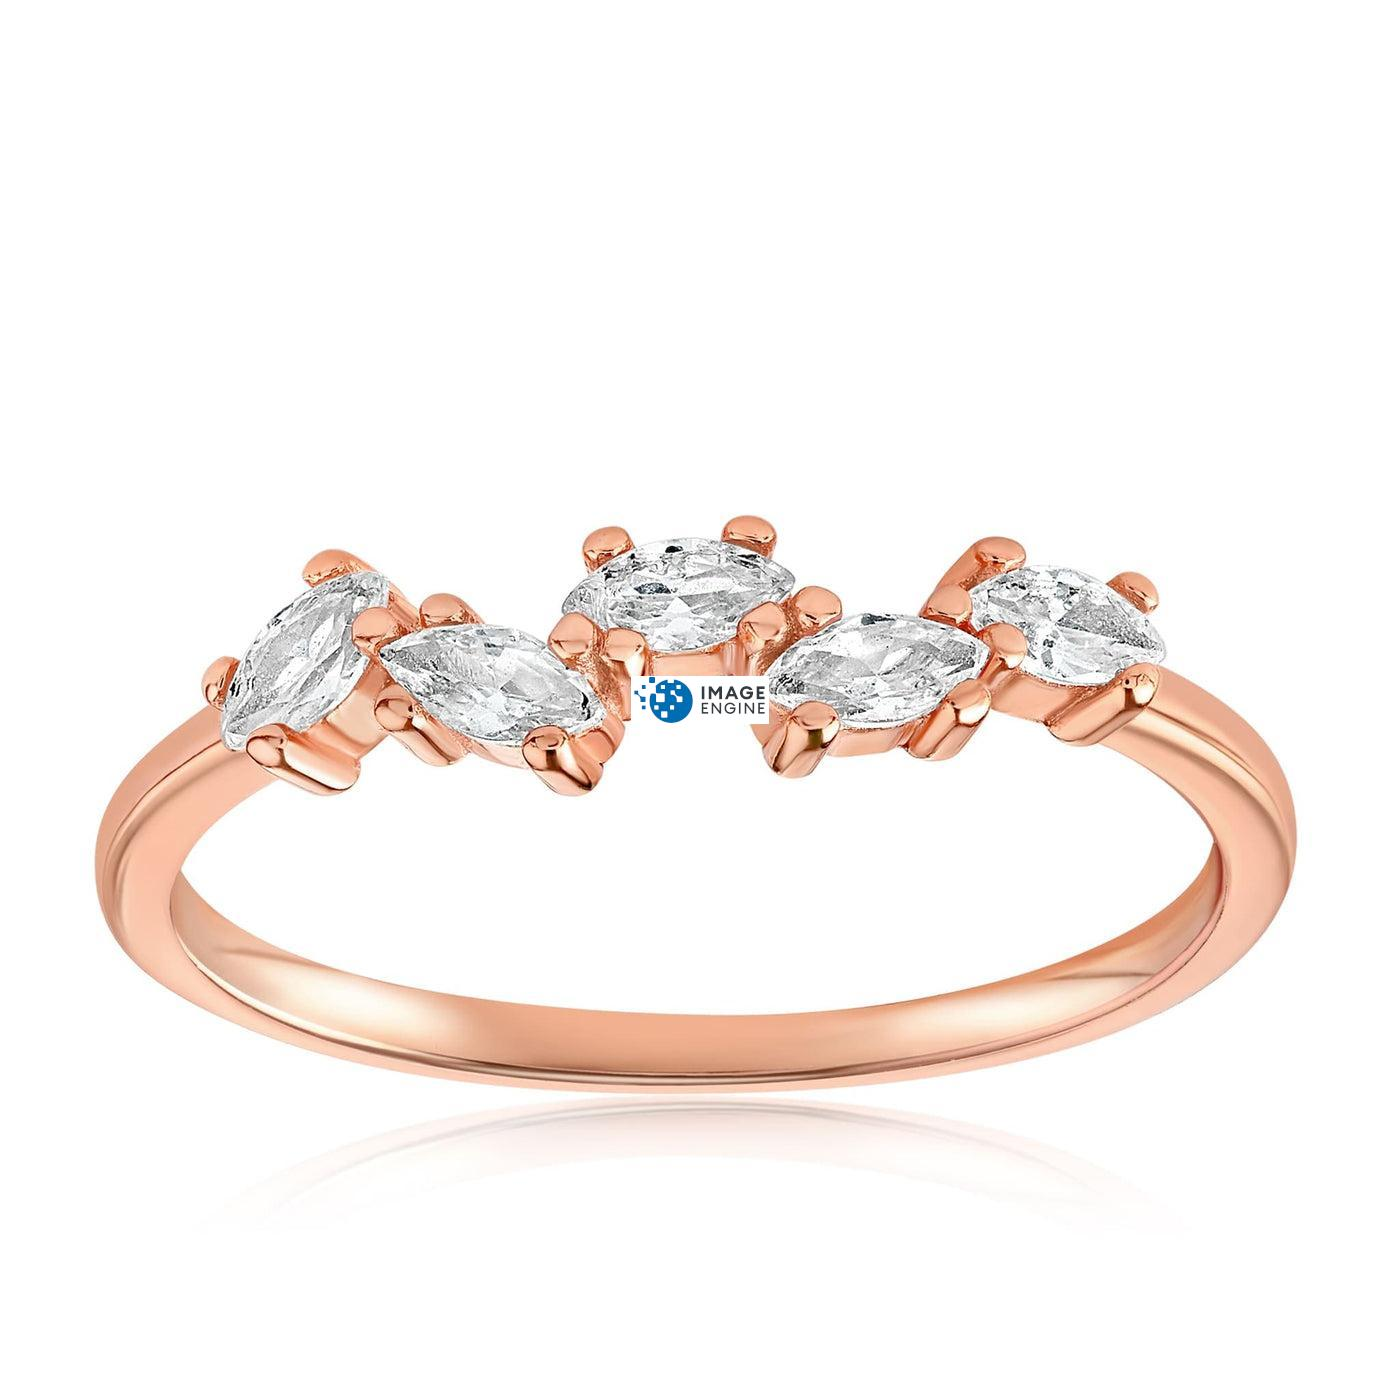 Genna Round Cut Ring - Front View Facing Up - 18K Rose Gold Vermeil